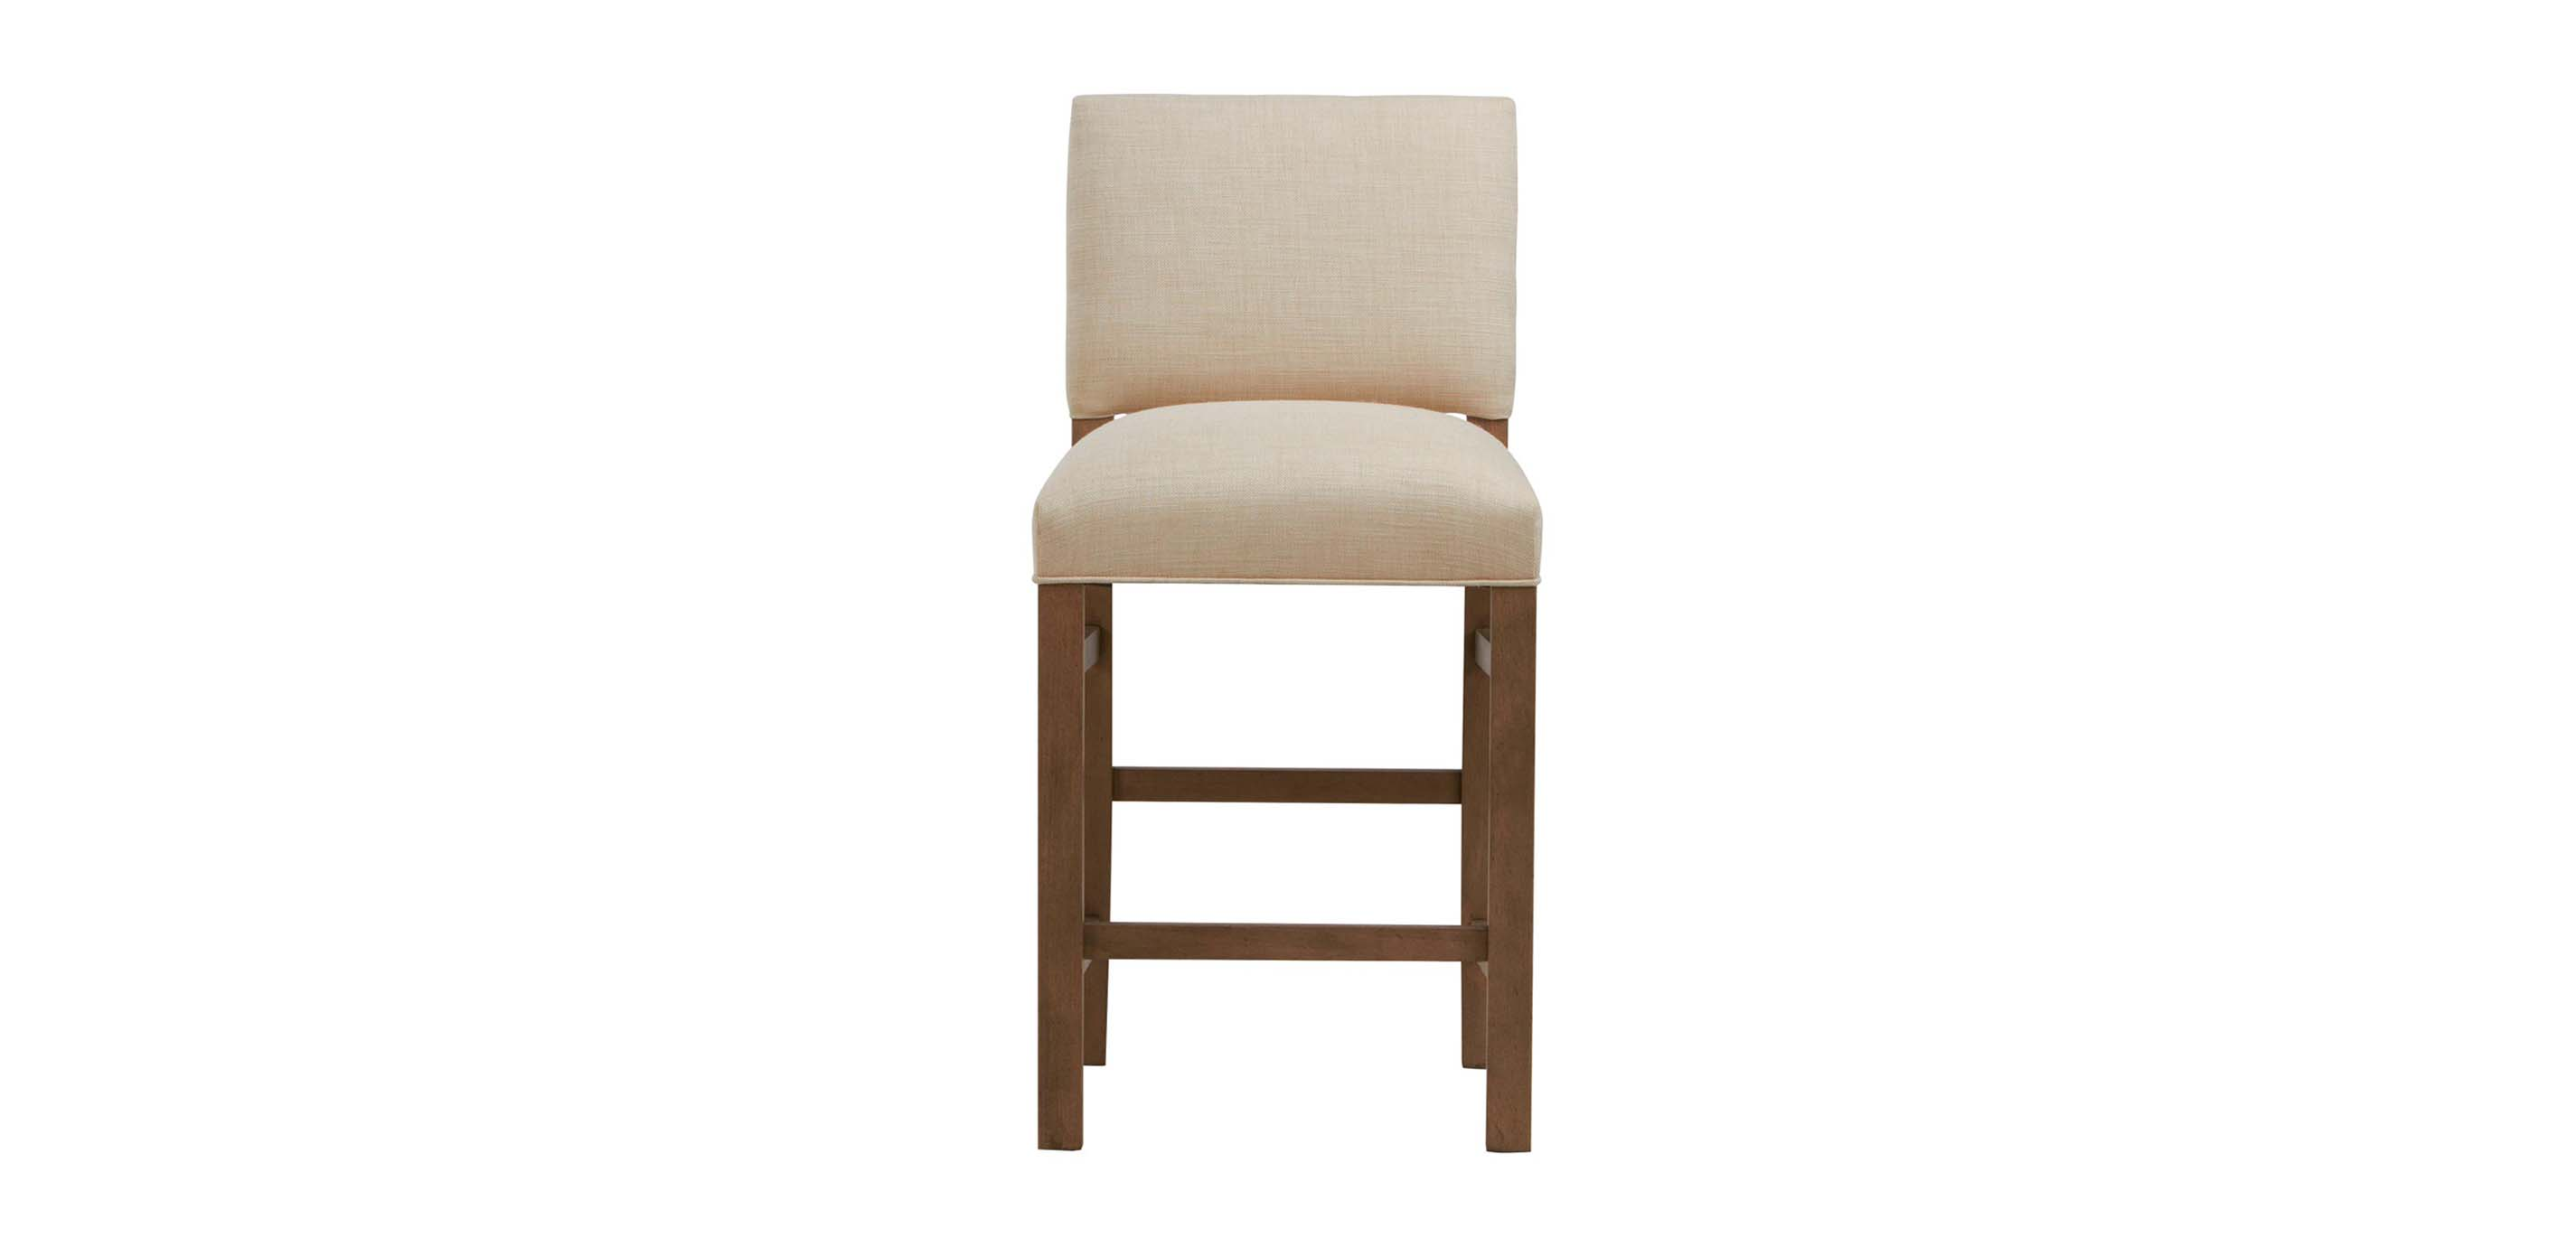 furniture shop vryheid img country ruby back room upholsted dining straight chair seat